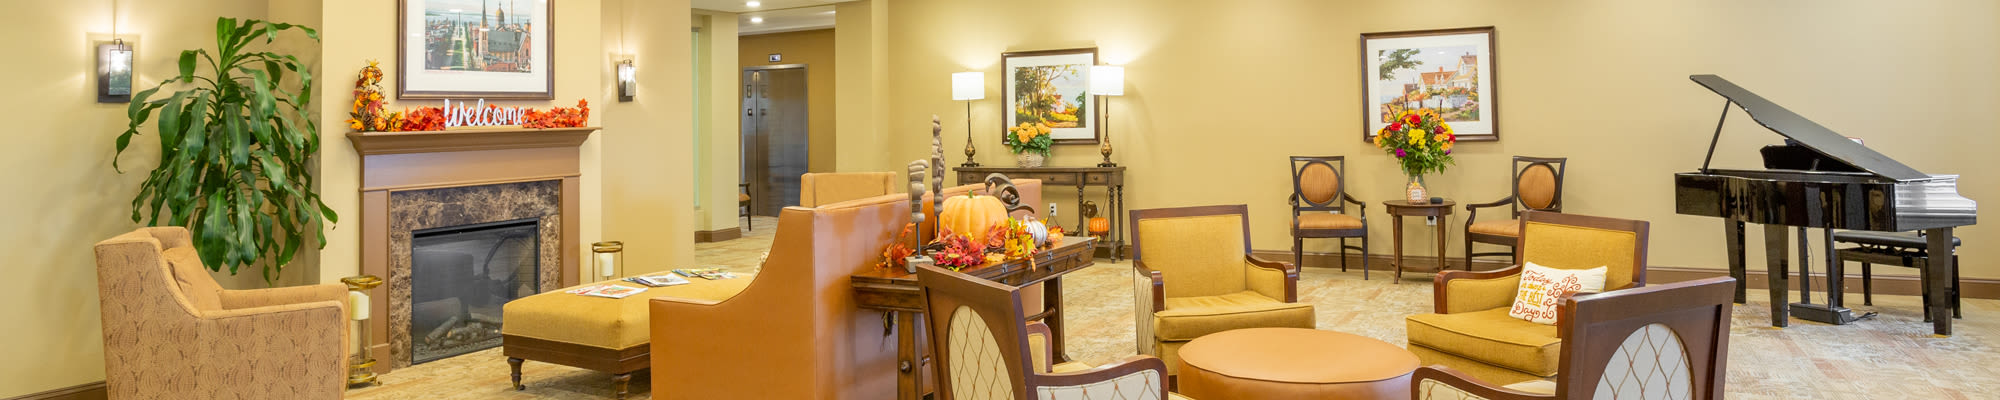 Services & Amenities at Harmony at West Shore in Mechanicsburg, Pennsylvania